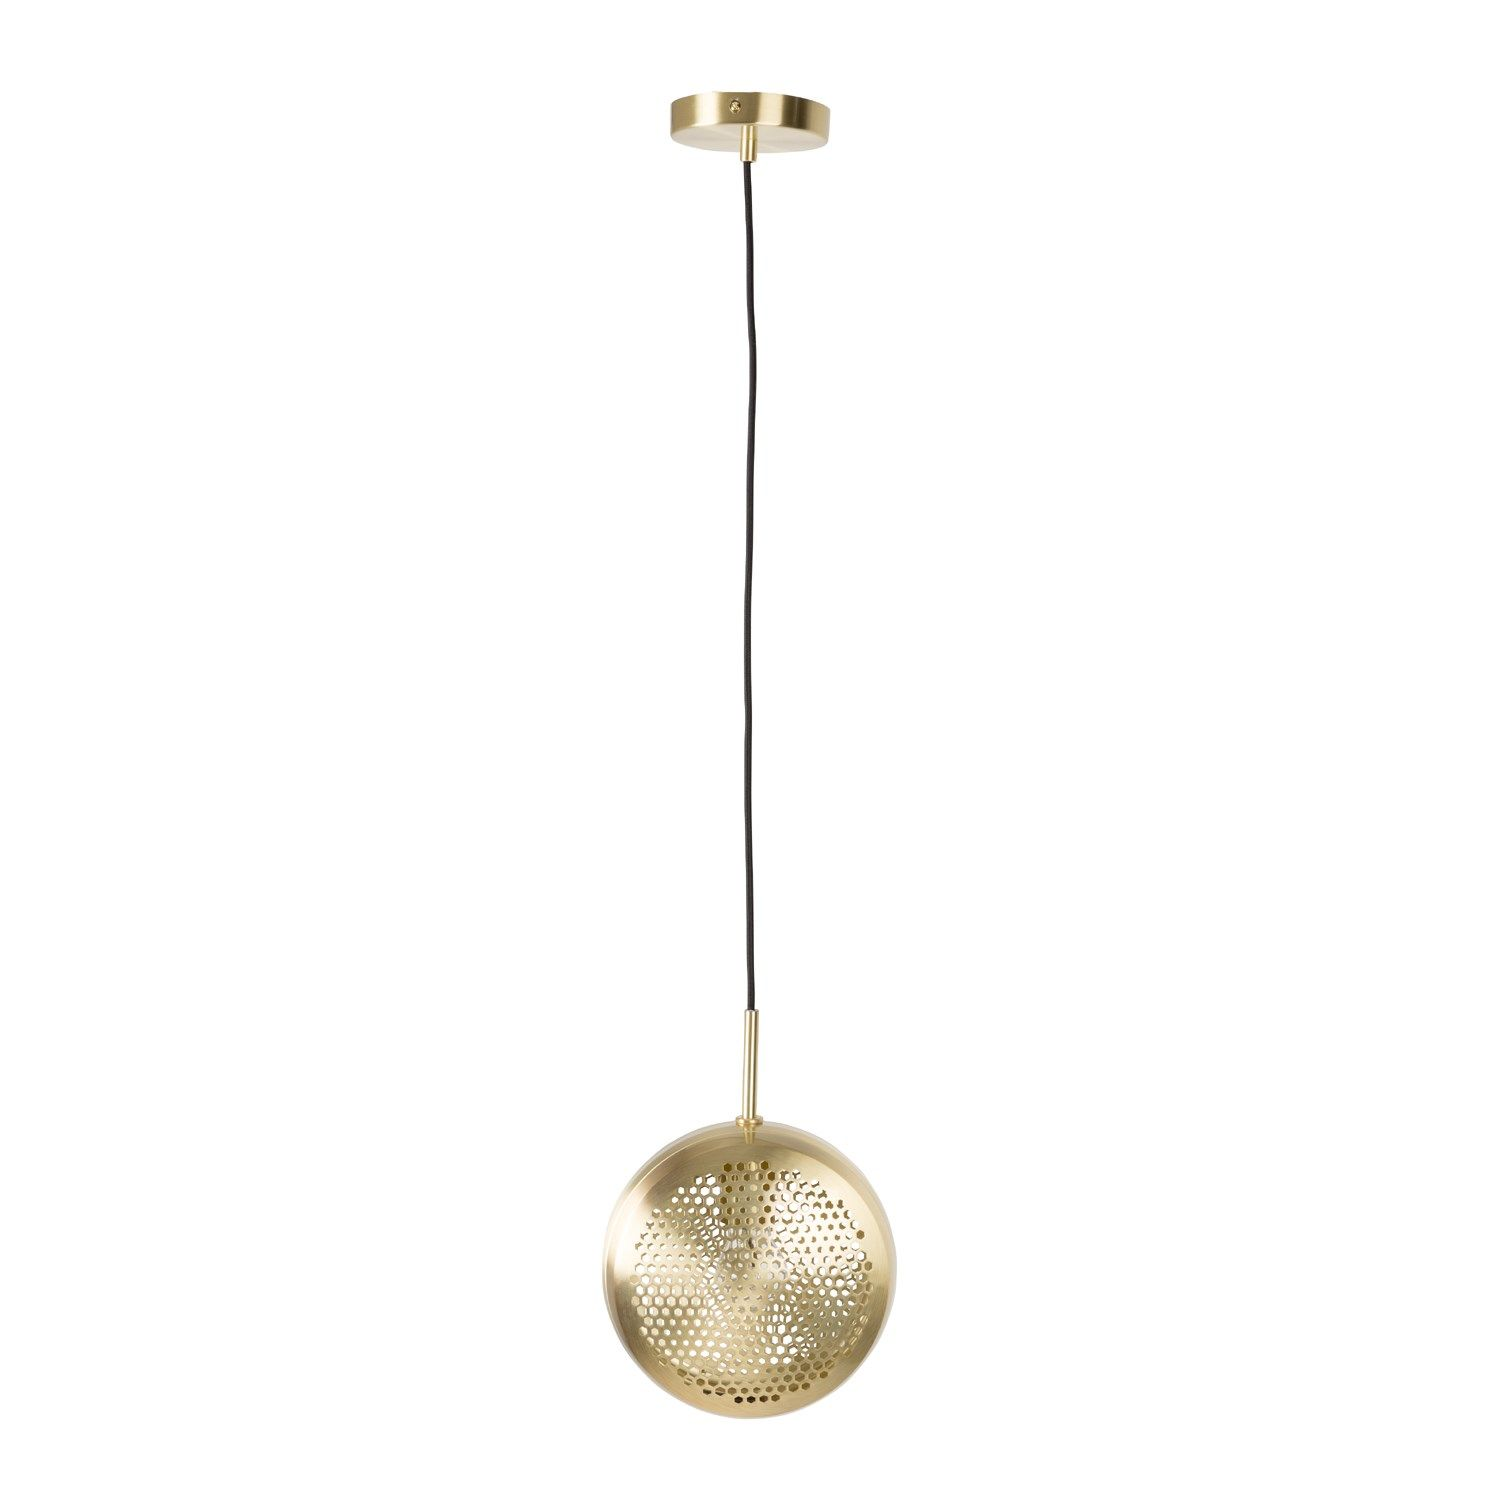 Messing Lampe Zuiver Pendel Lampe Gringo Flat Messing